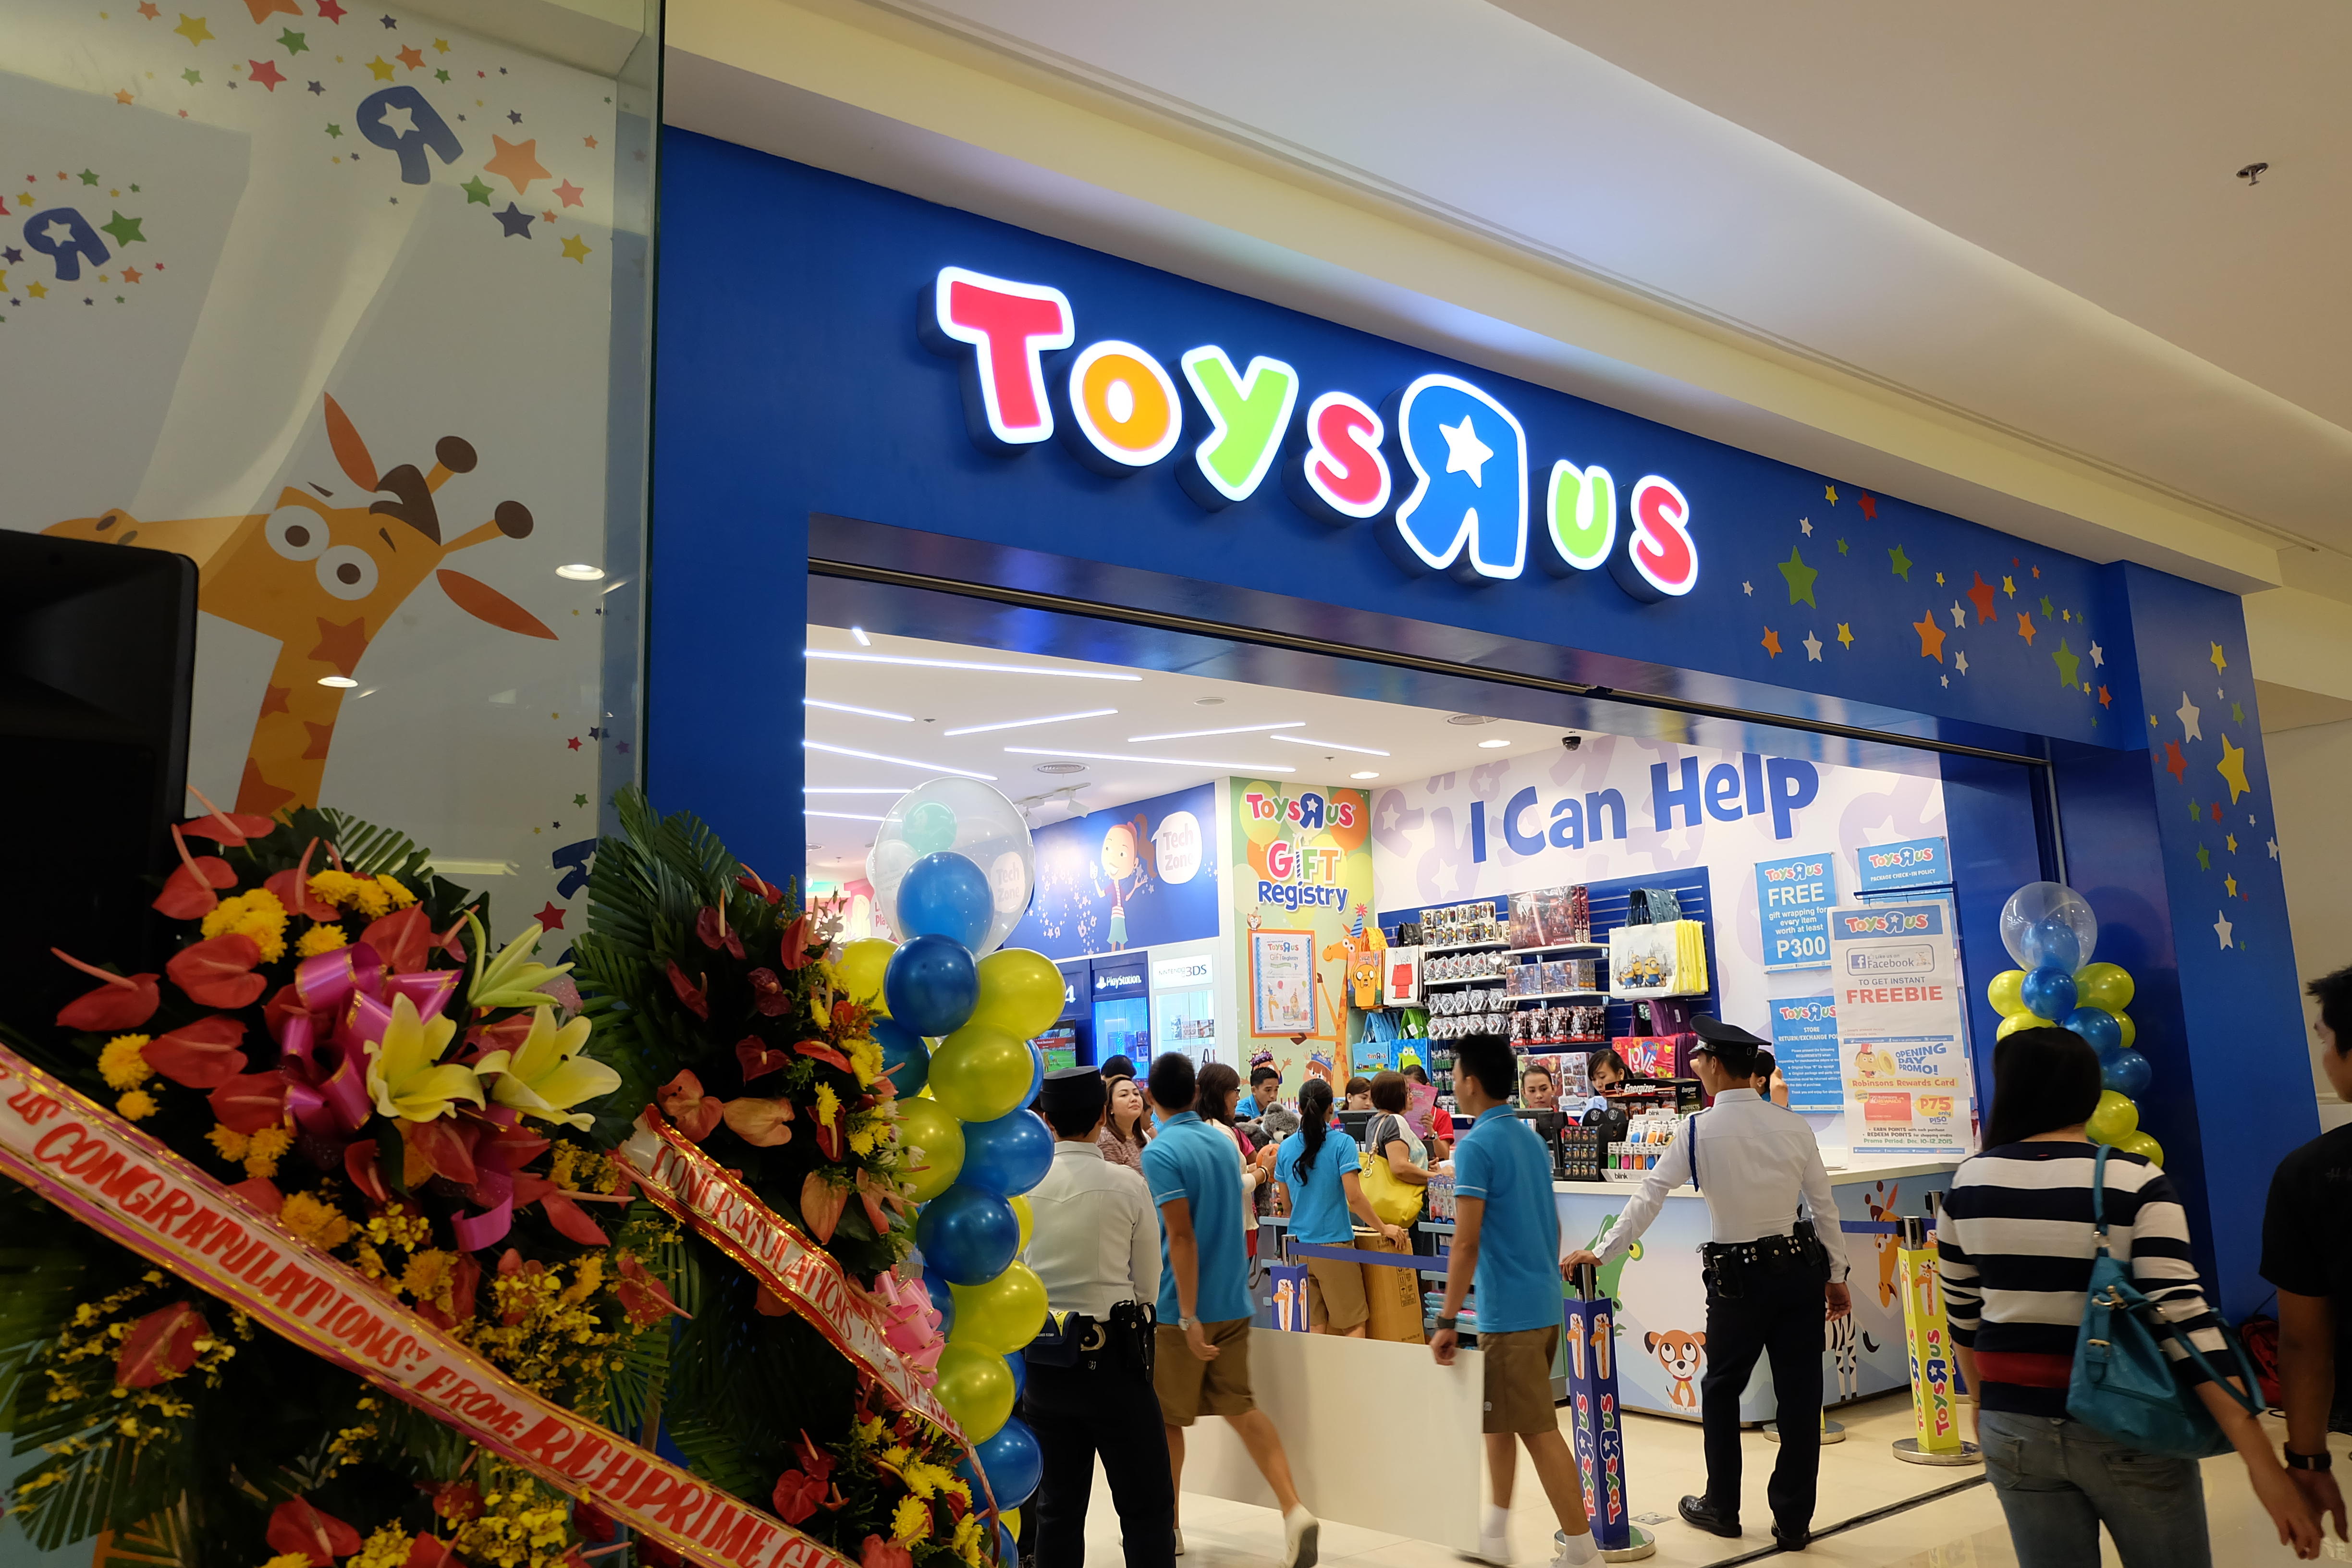 Toys R Us Küchenset Toys R Us At The New Robinsons Galleria Issaplease